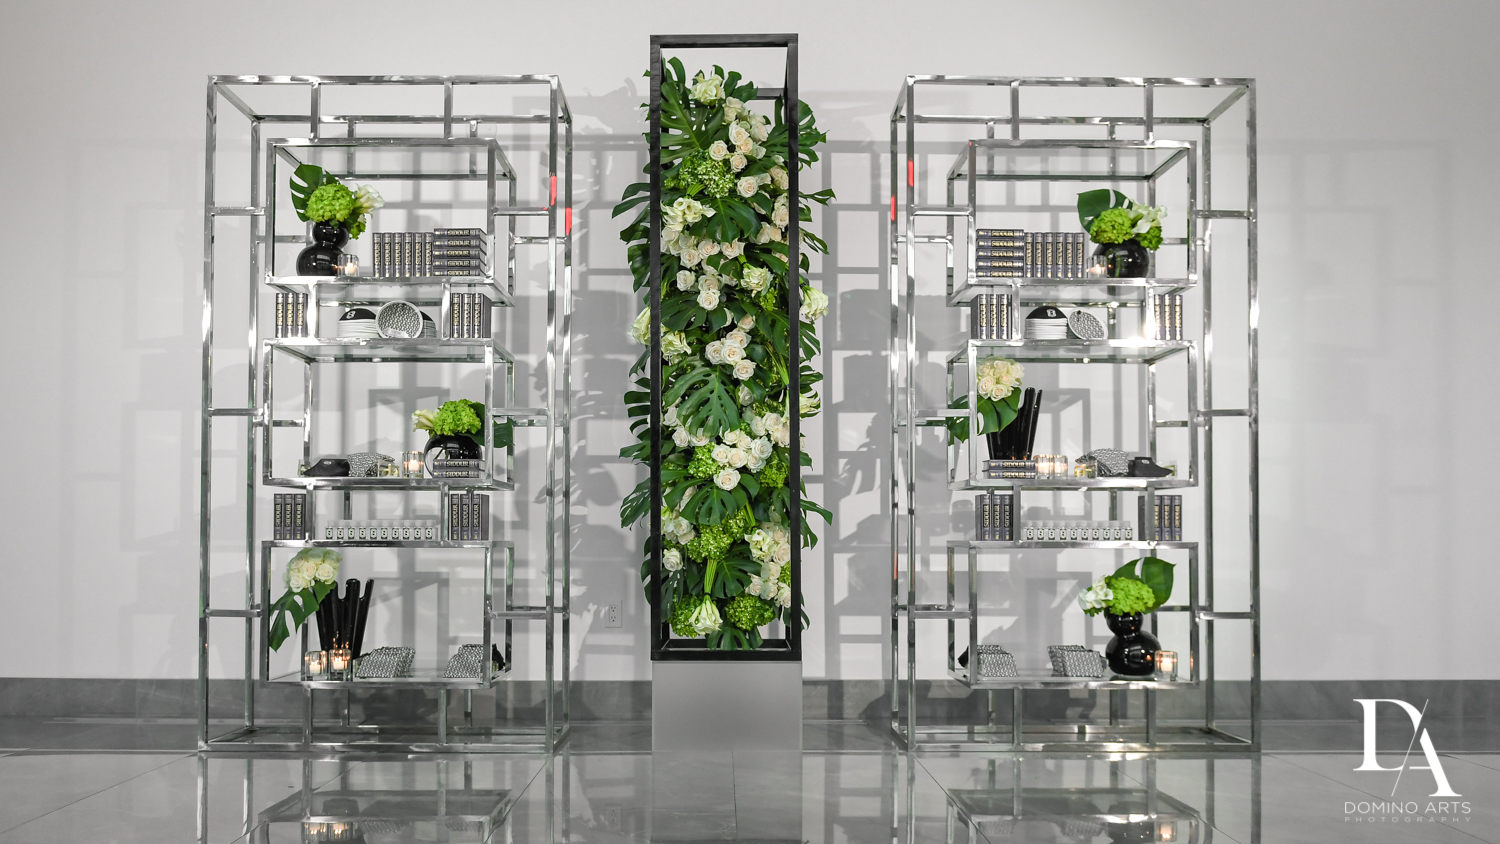 greenery decor at Monochrome Bar Mitzvah Ceremony at Aventura Chabad by Domino Arts Photography